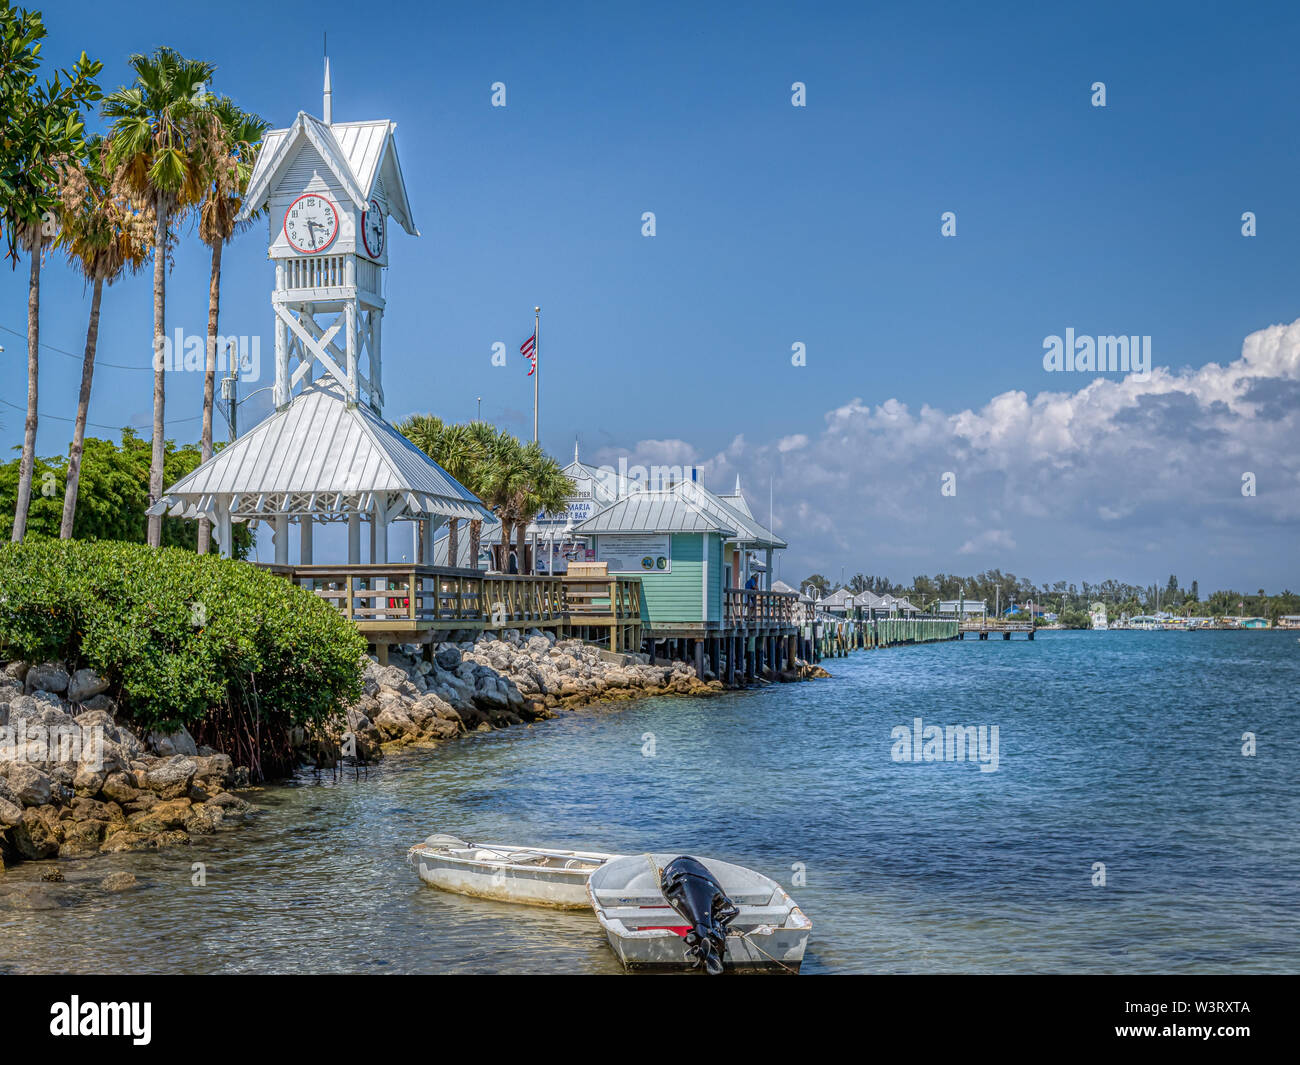 Bradenton Beach Stock Photos & Bradenton Beach Stock Images - Alamy